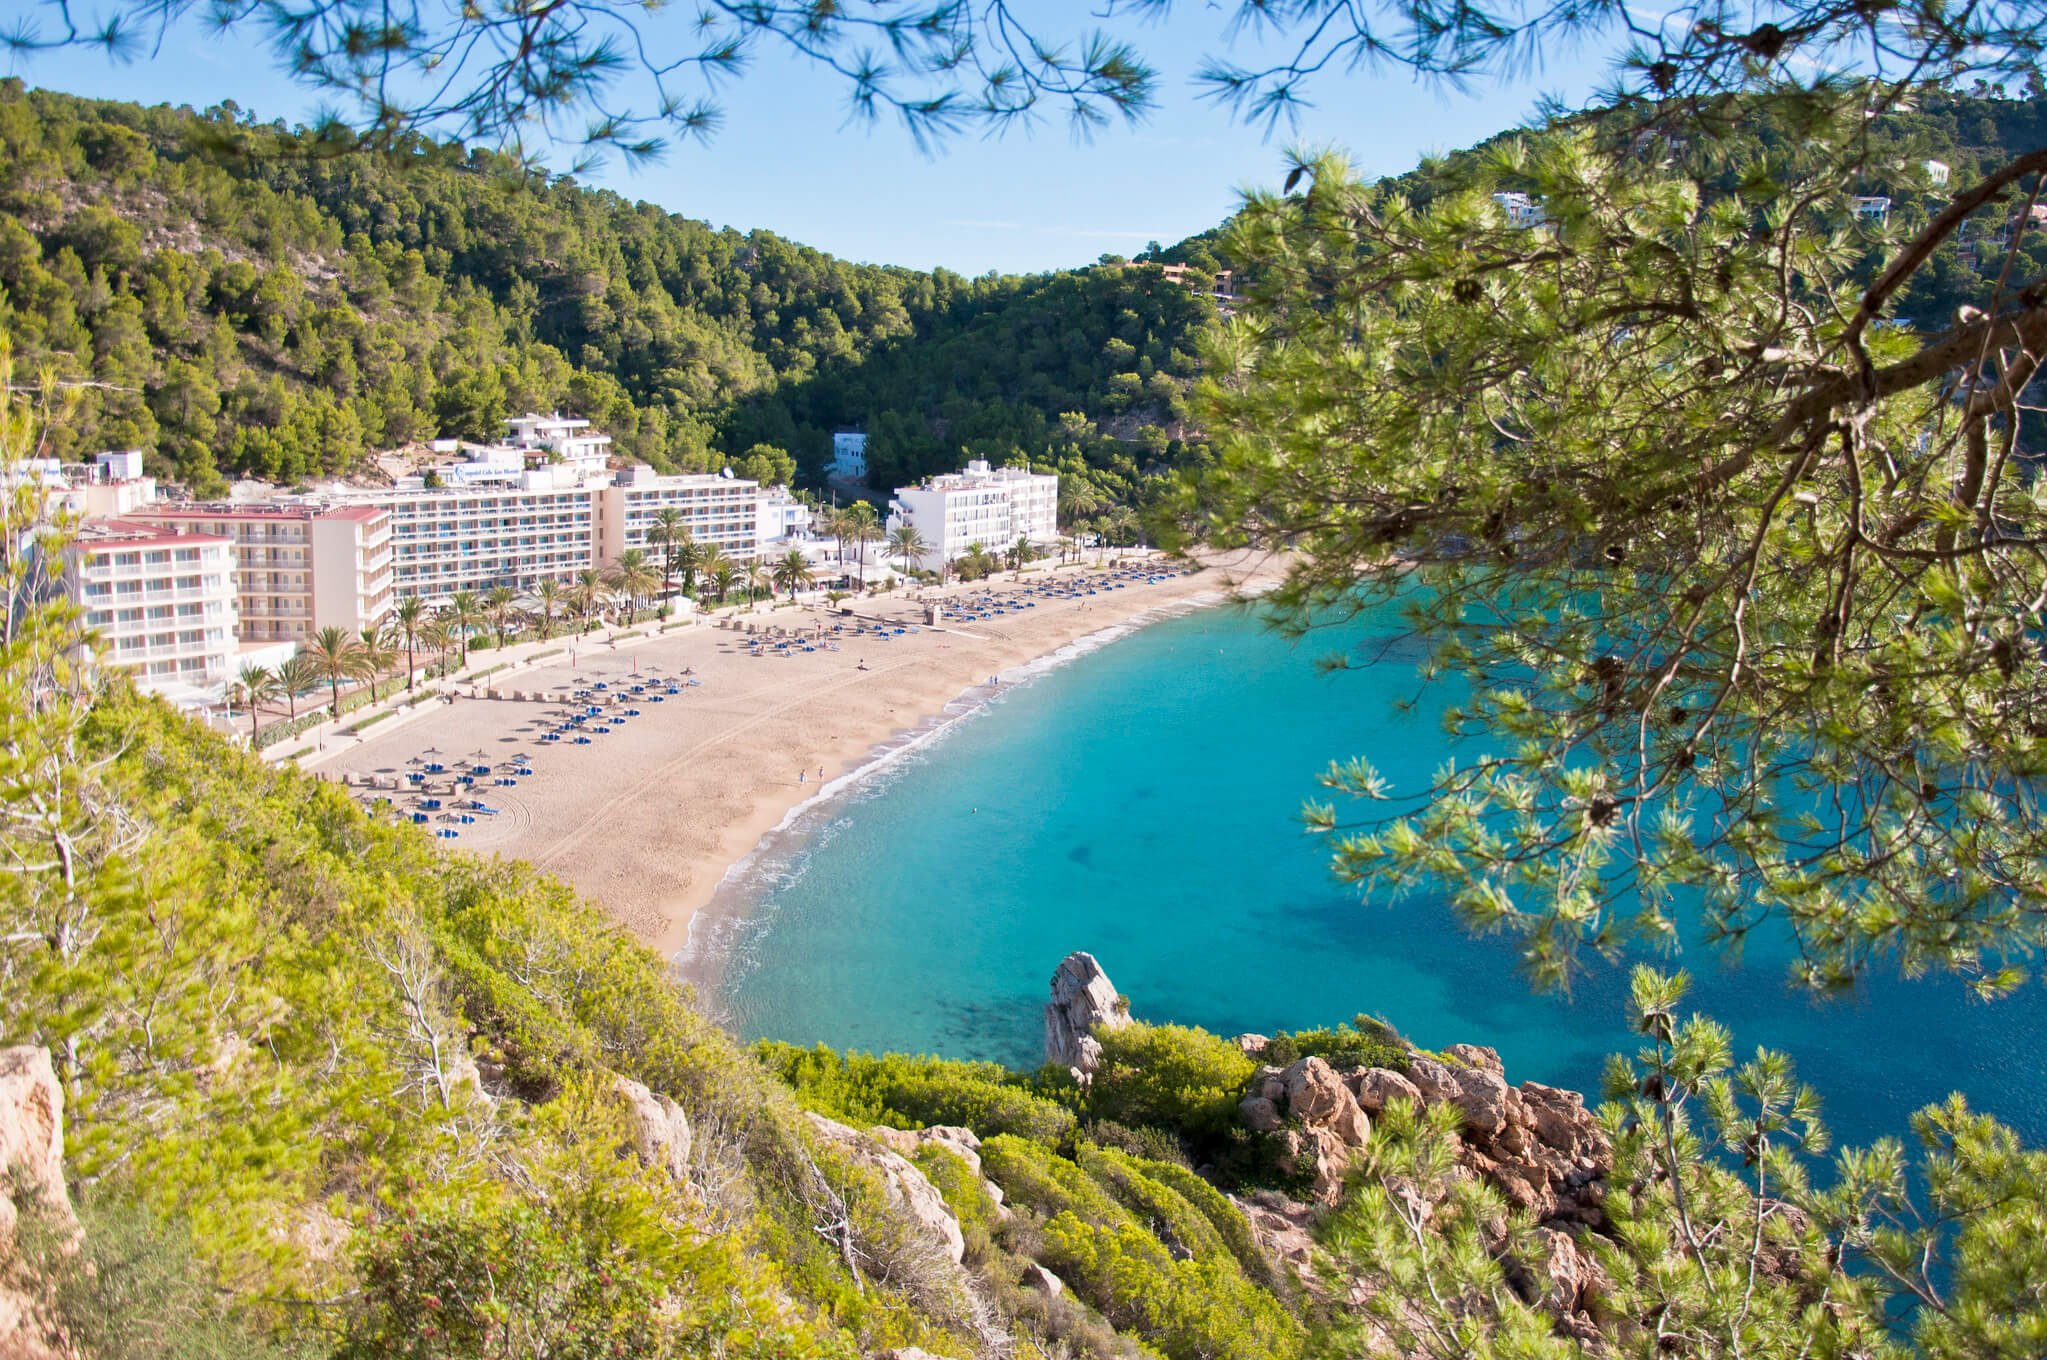 https://www.white-ibiza.com/wp-content/uploads/2020/03/ibiza-beaches-cala-san-vicente-01.jpg